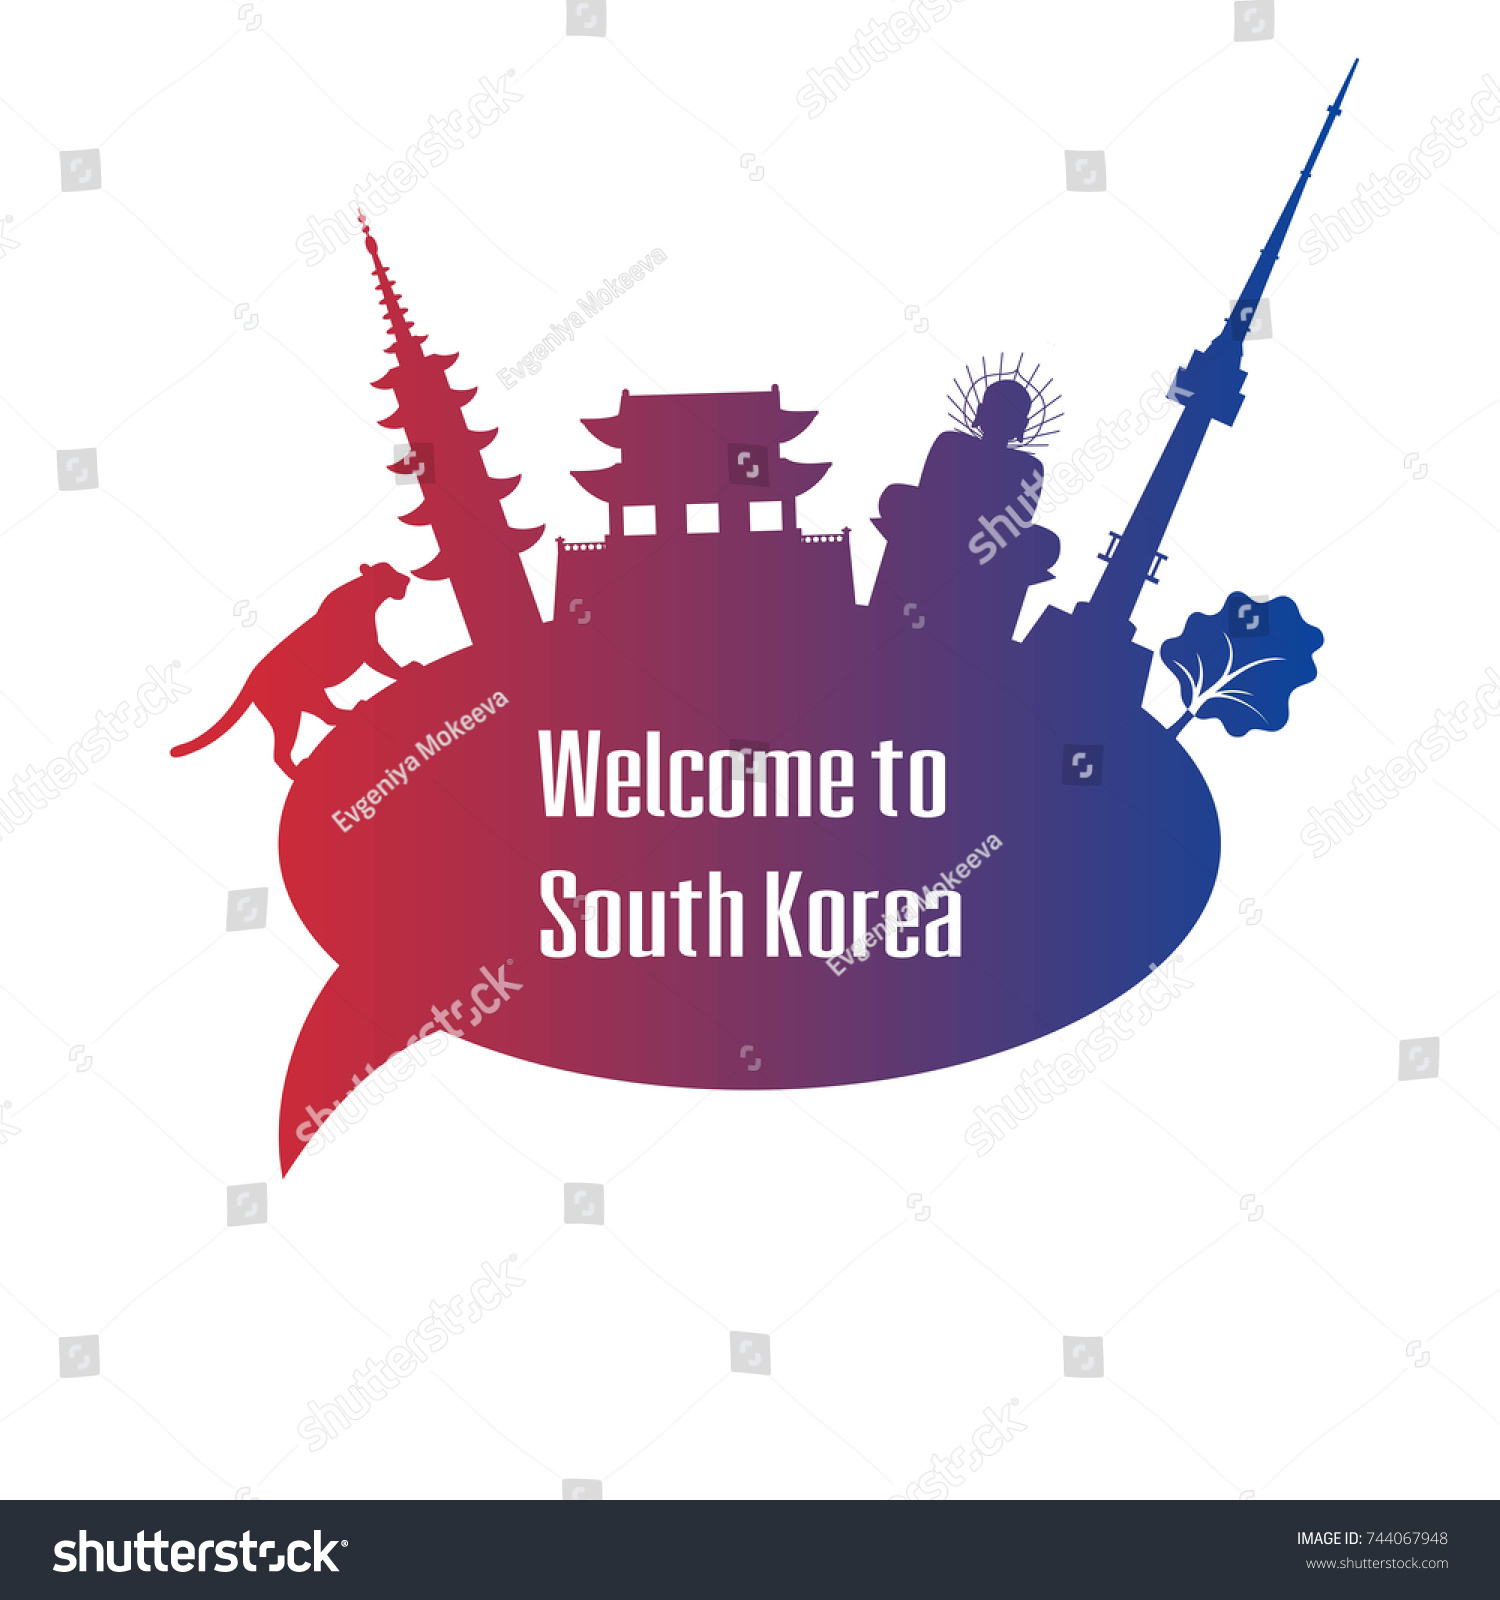 Welcome south korea poster symbols south stock vector 744067948 welcome to south korea poster with symbols of south korea vector illustration biocorpaavc Gallery